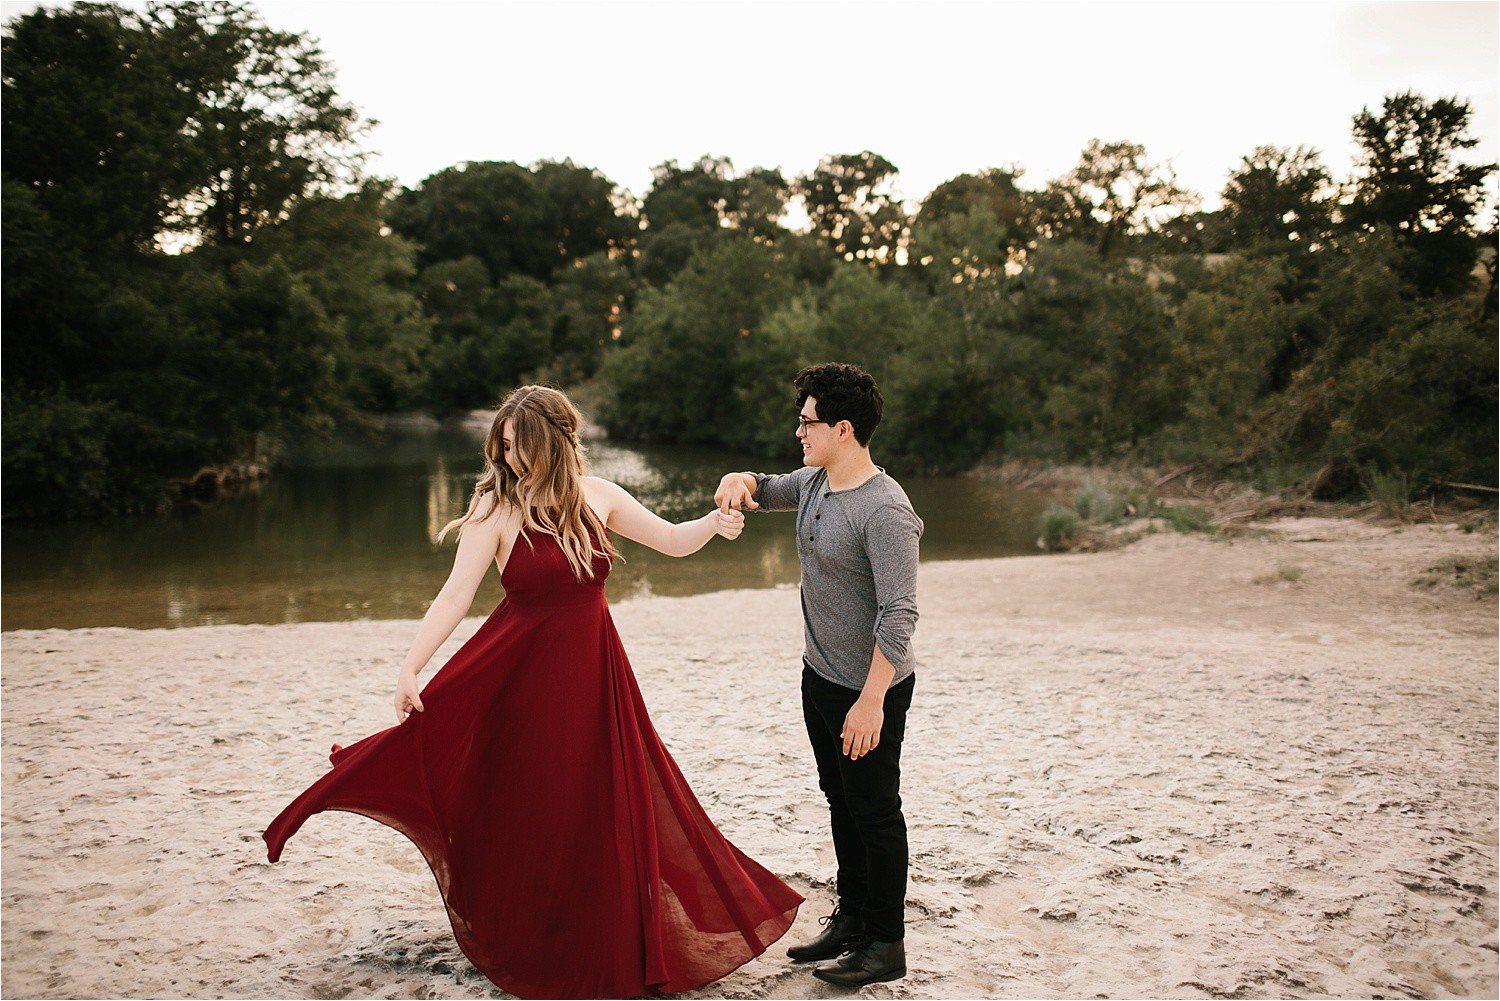 Ashley + Johnny || a romantic Austin engagement session